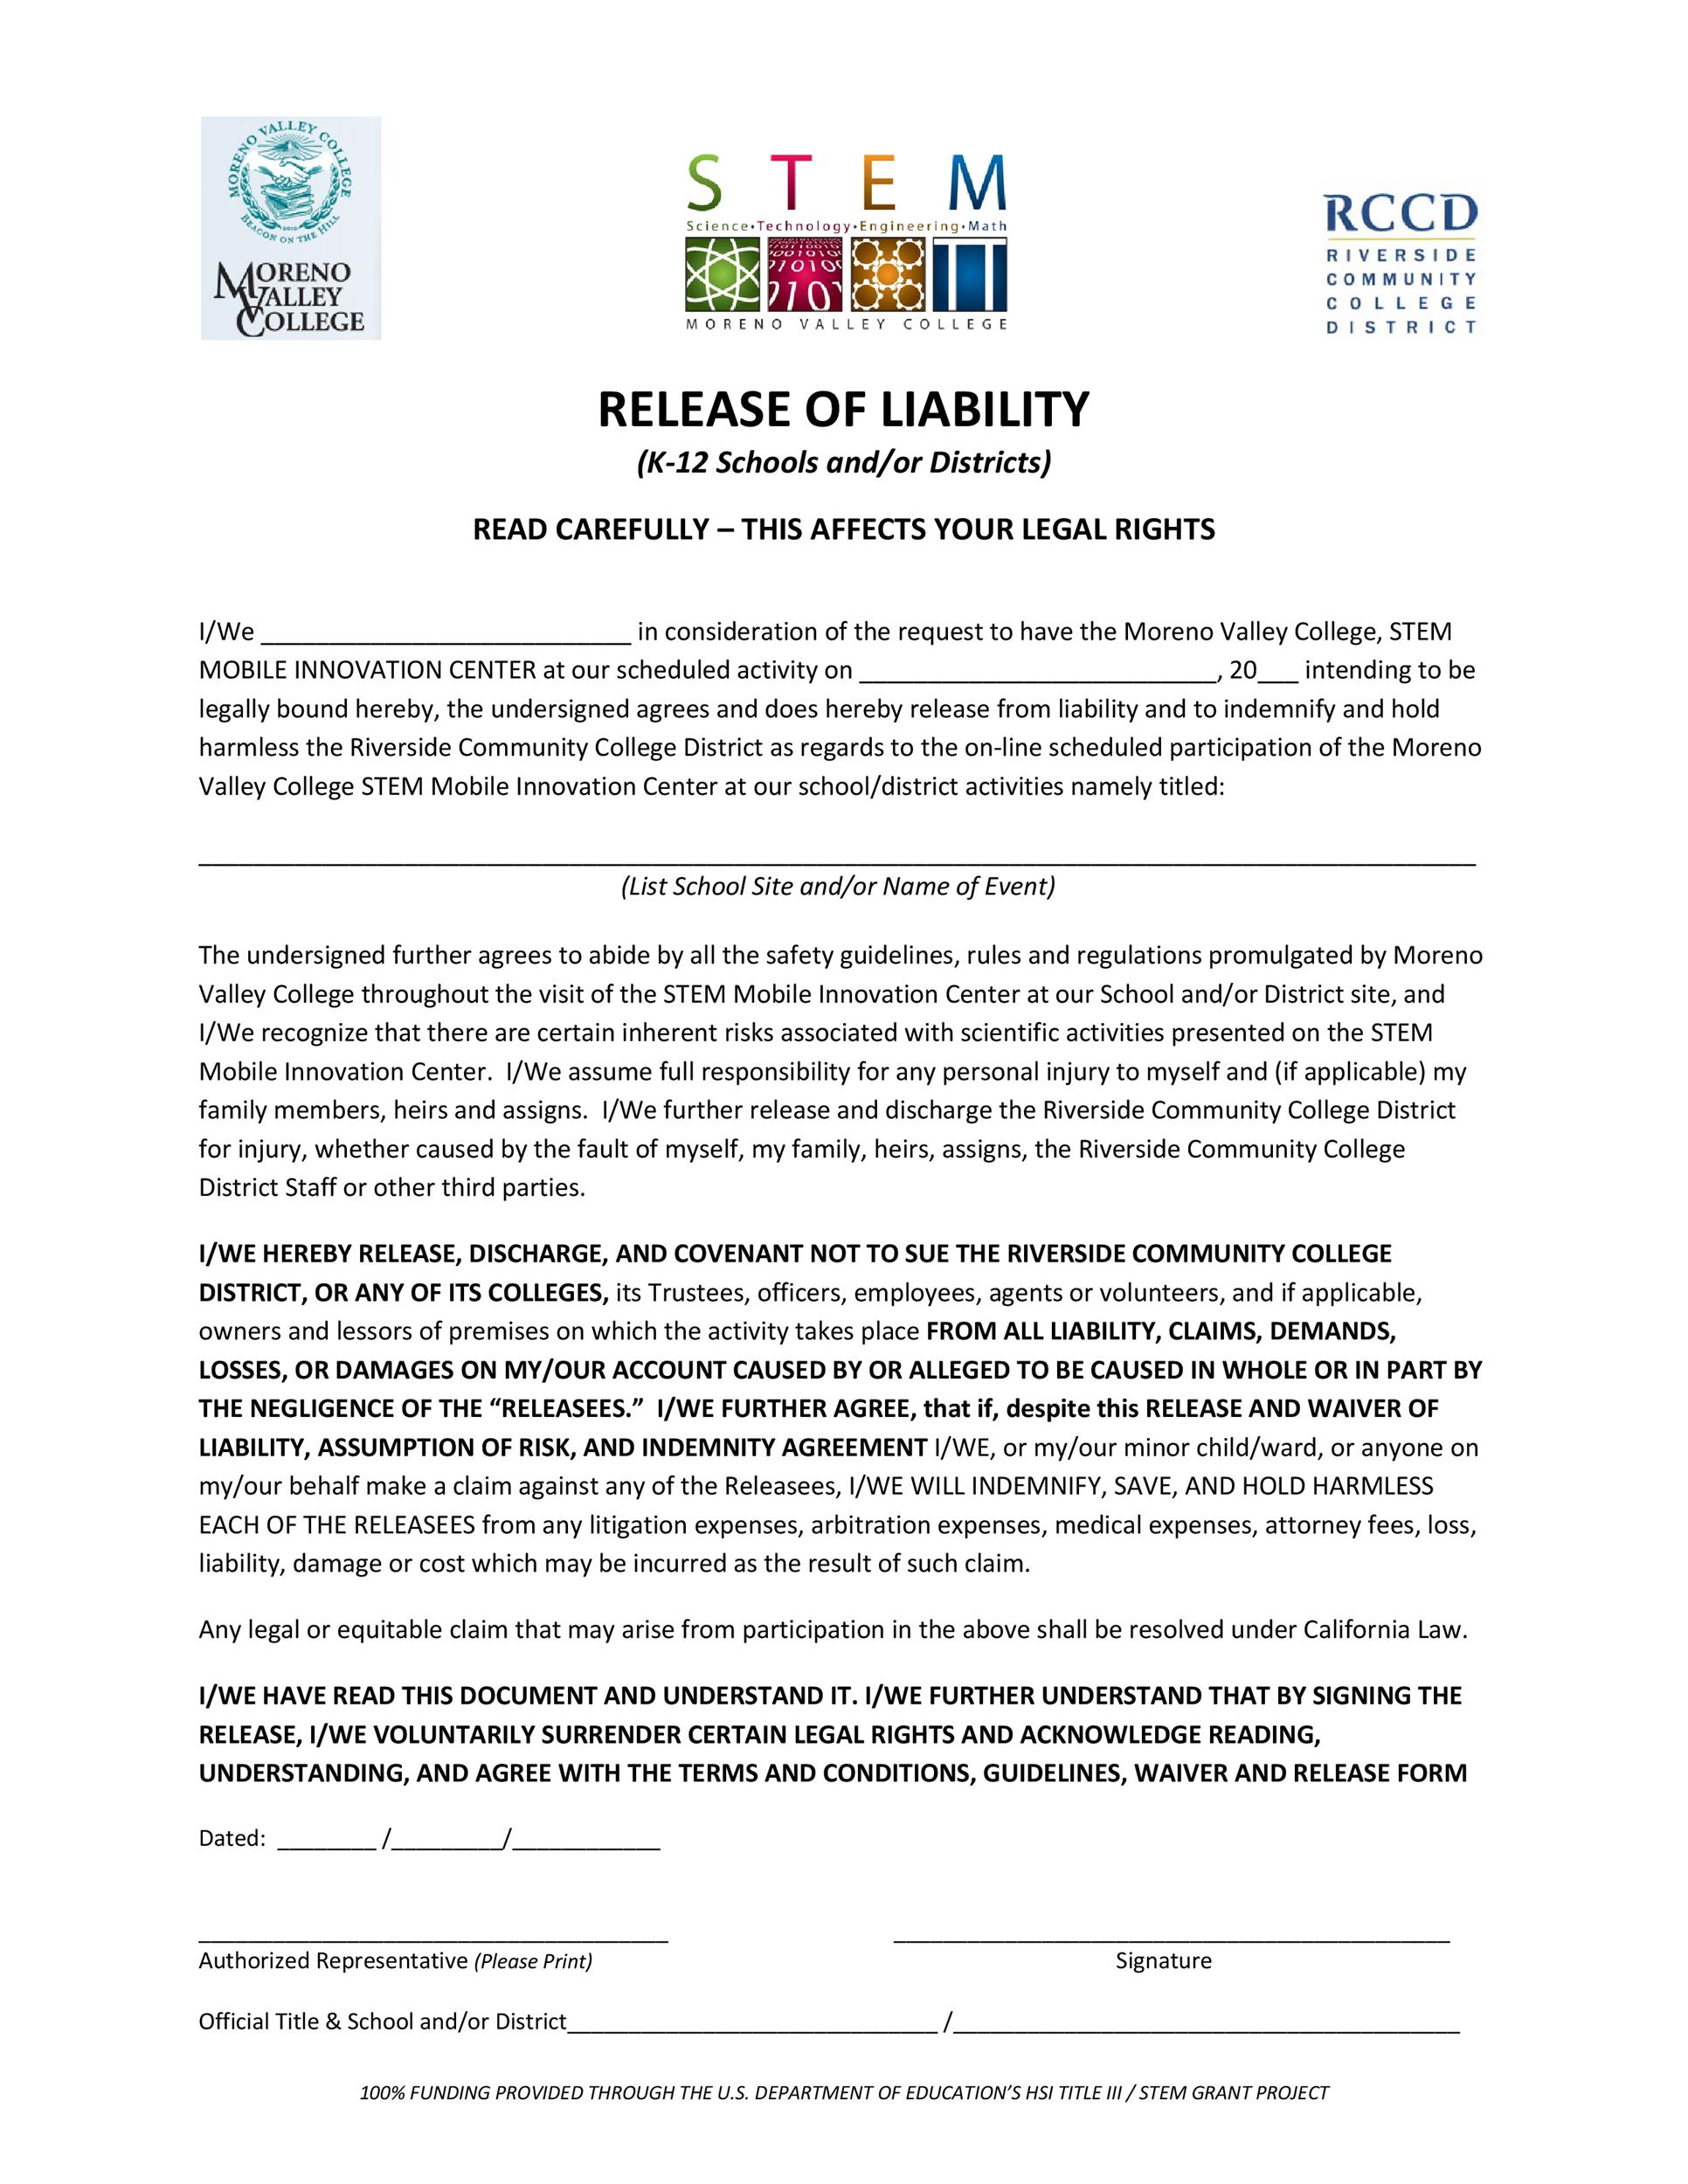 Free release of liability form 06